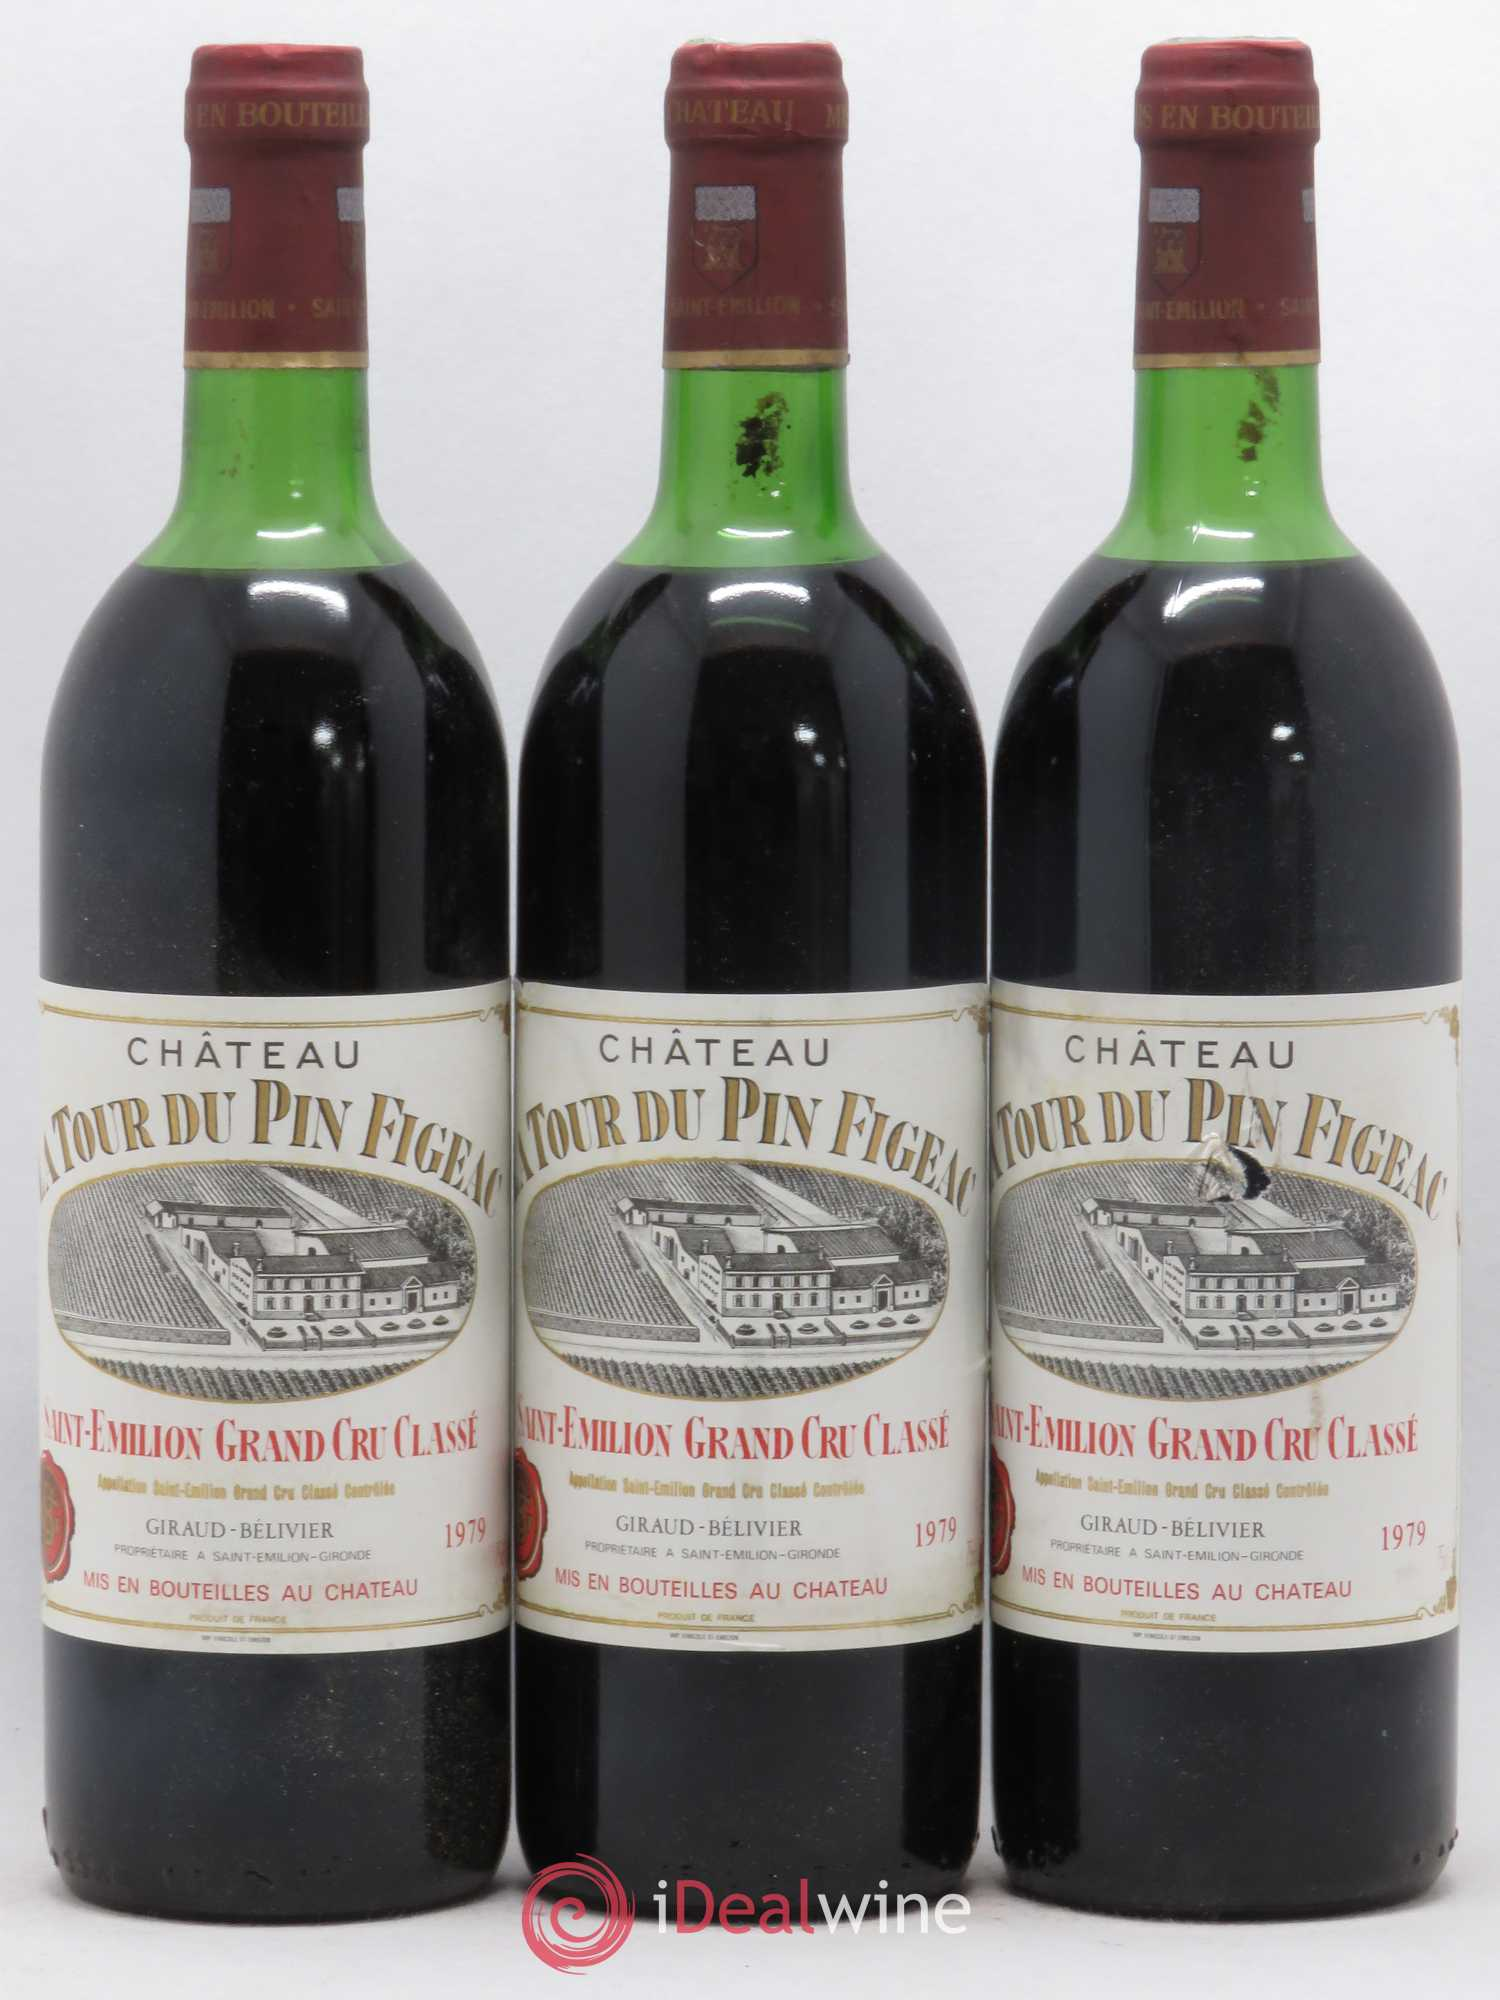 Château la Tour du Pin Figeac (no reserve) 1979 - Lot of 3 Bottles